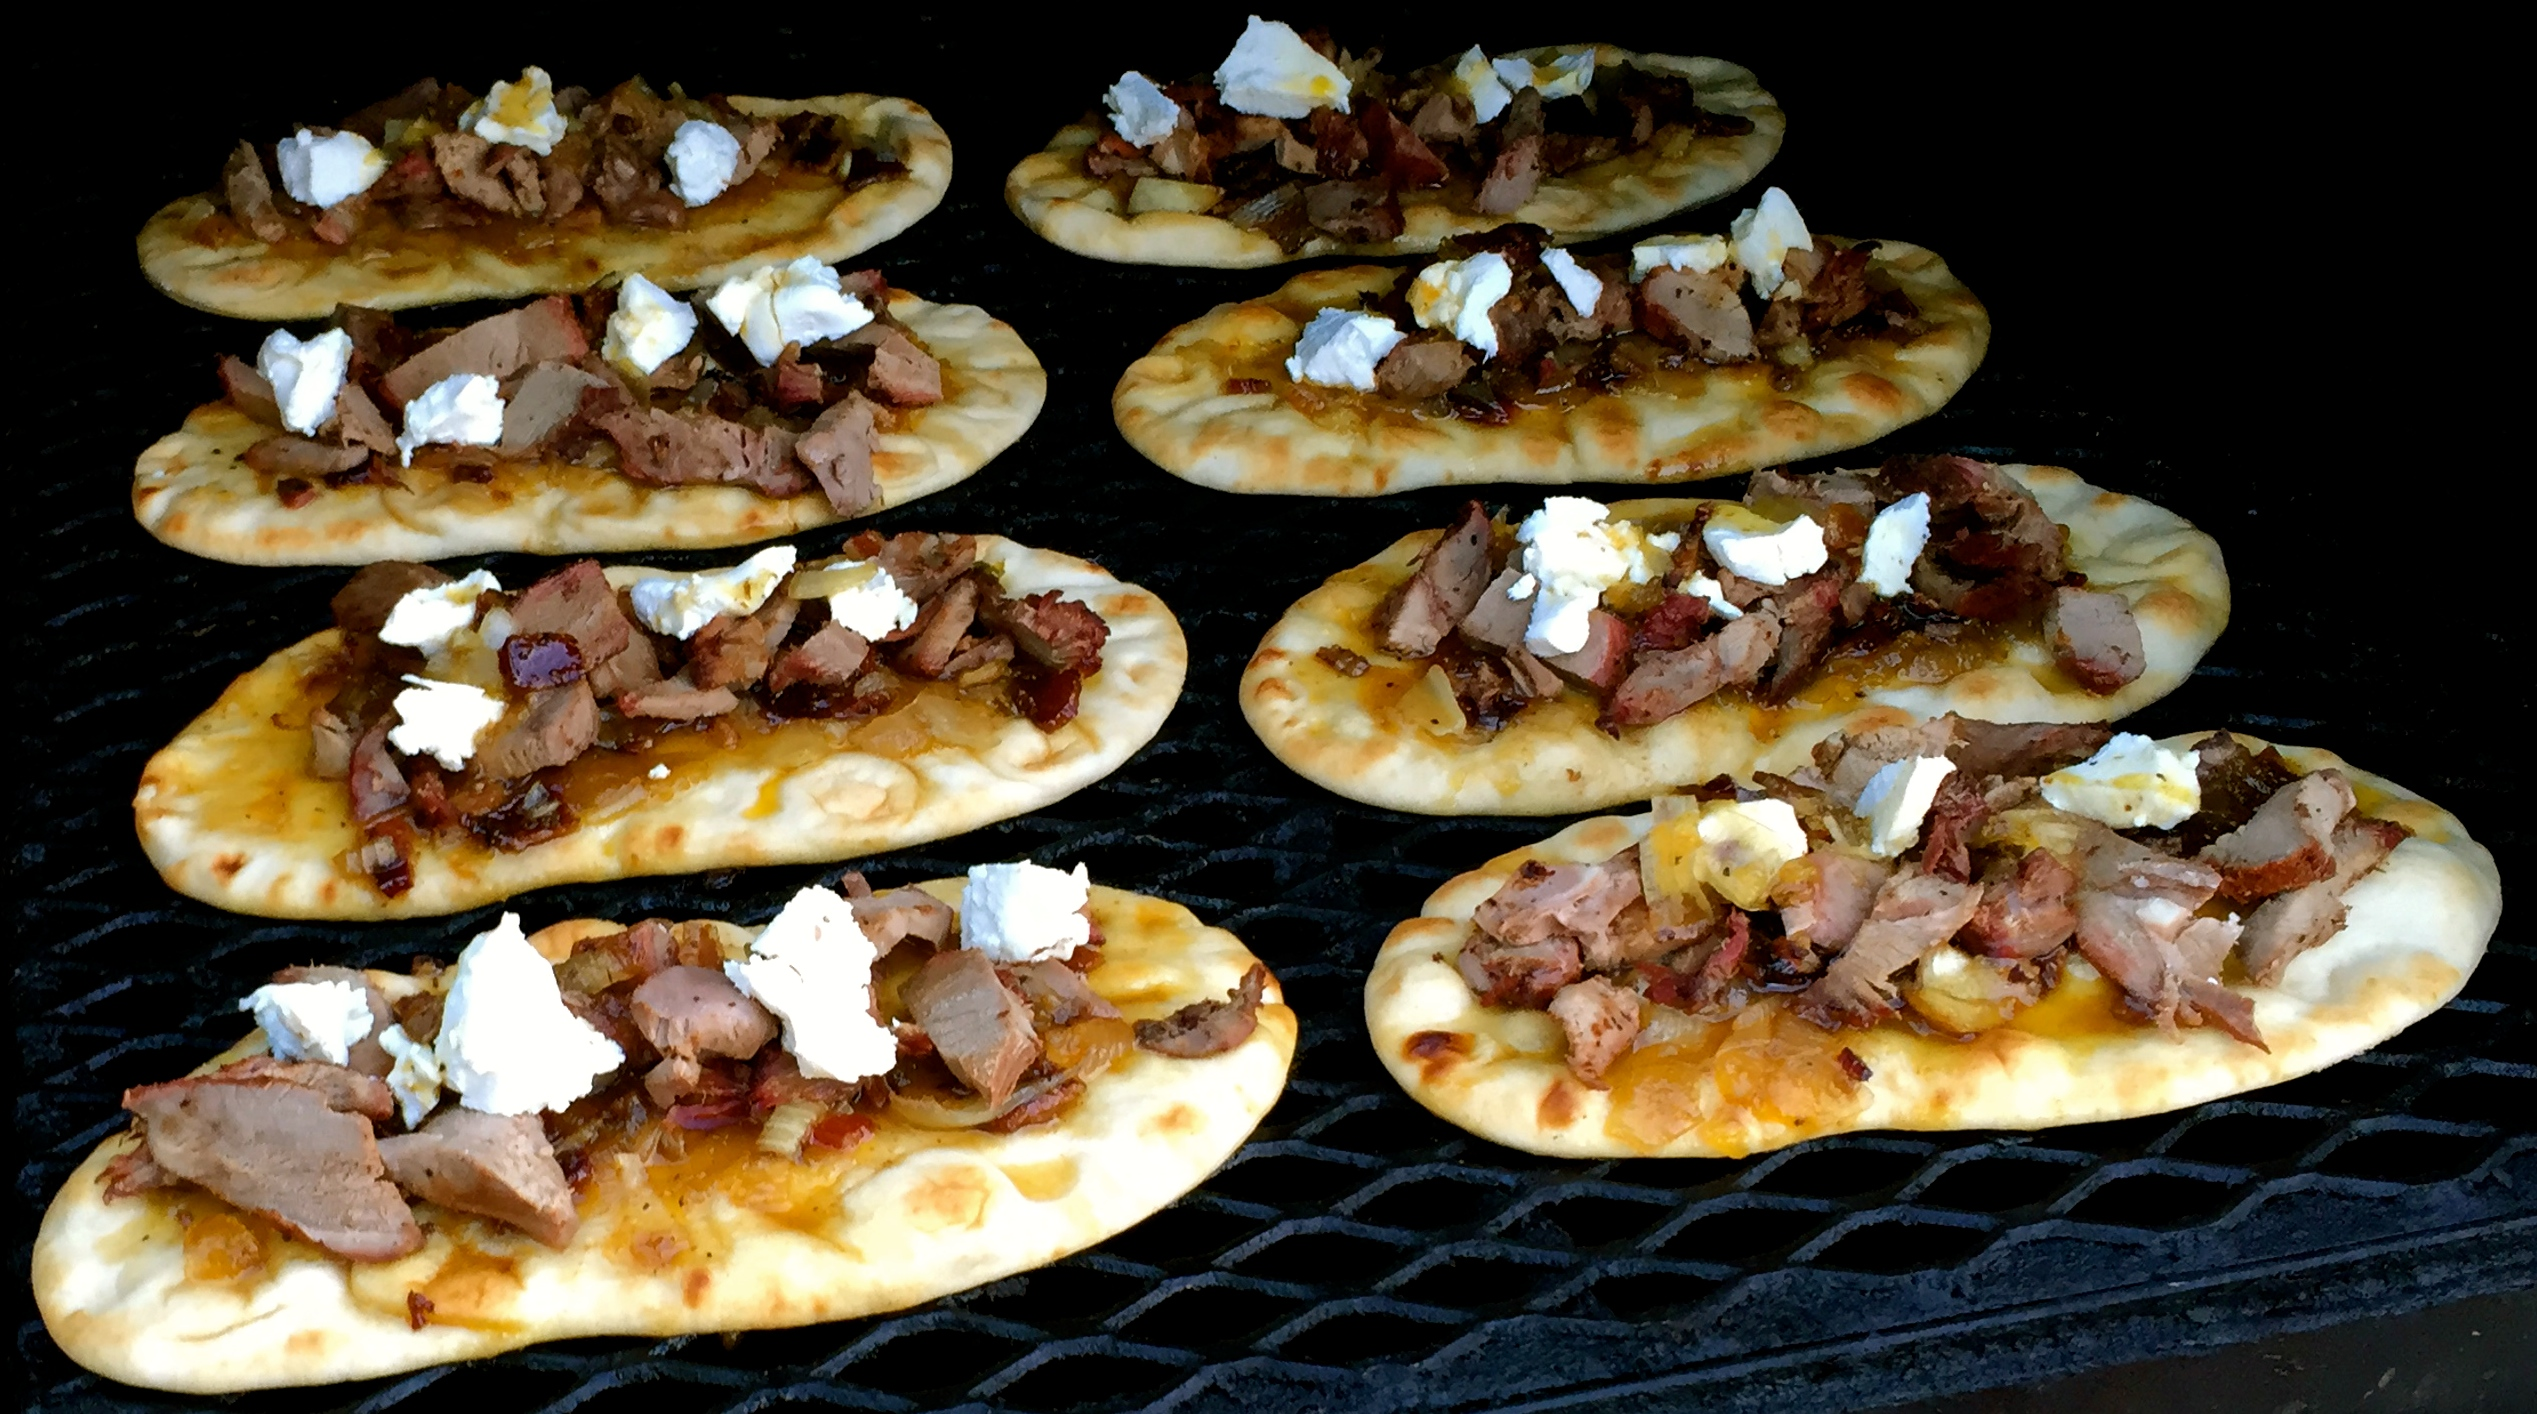 venison flatbread on smoker